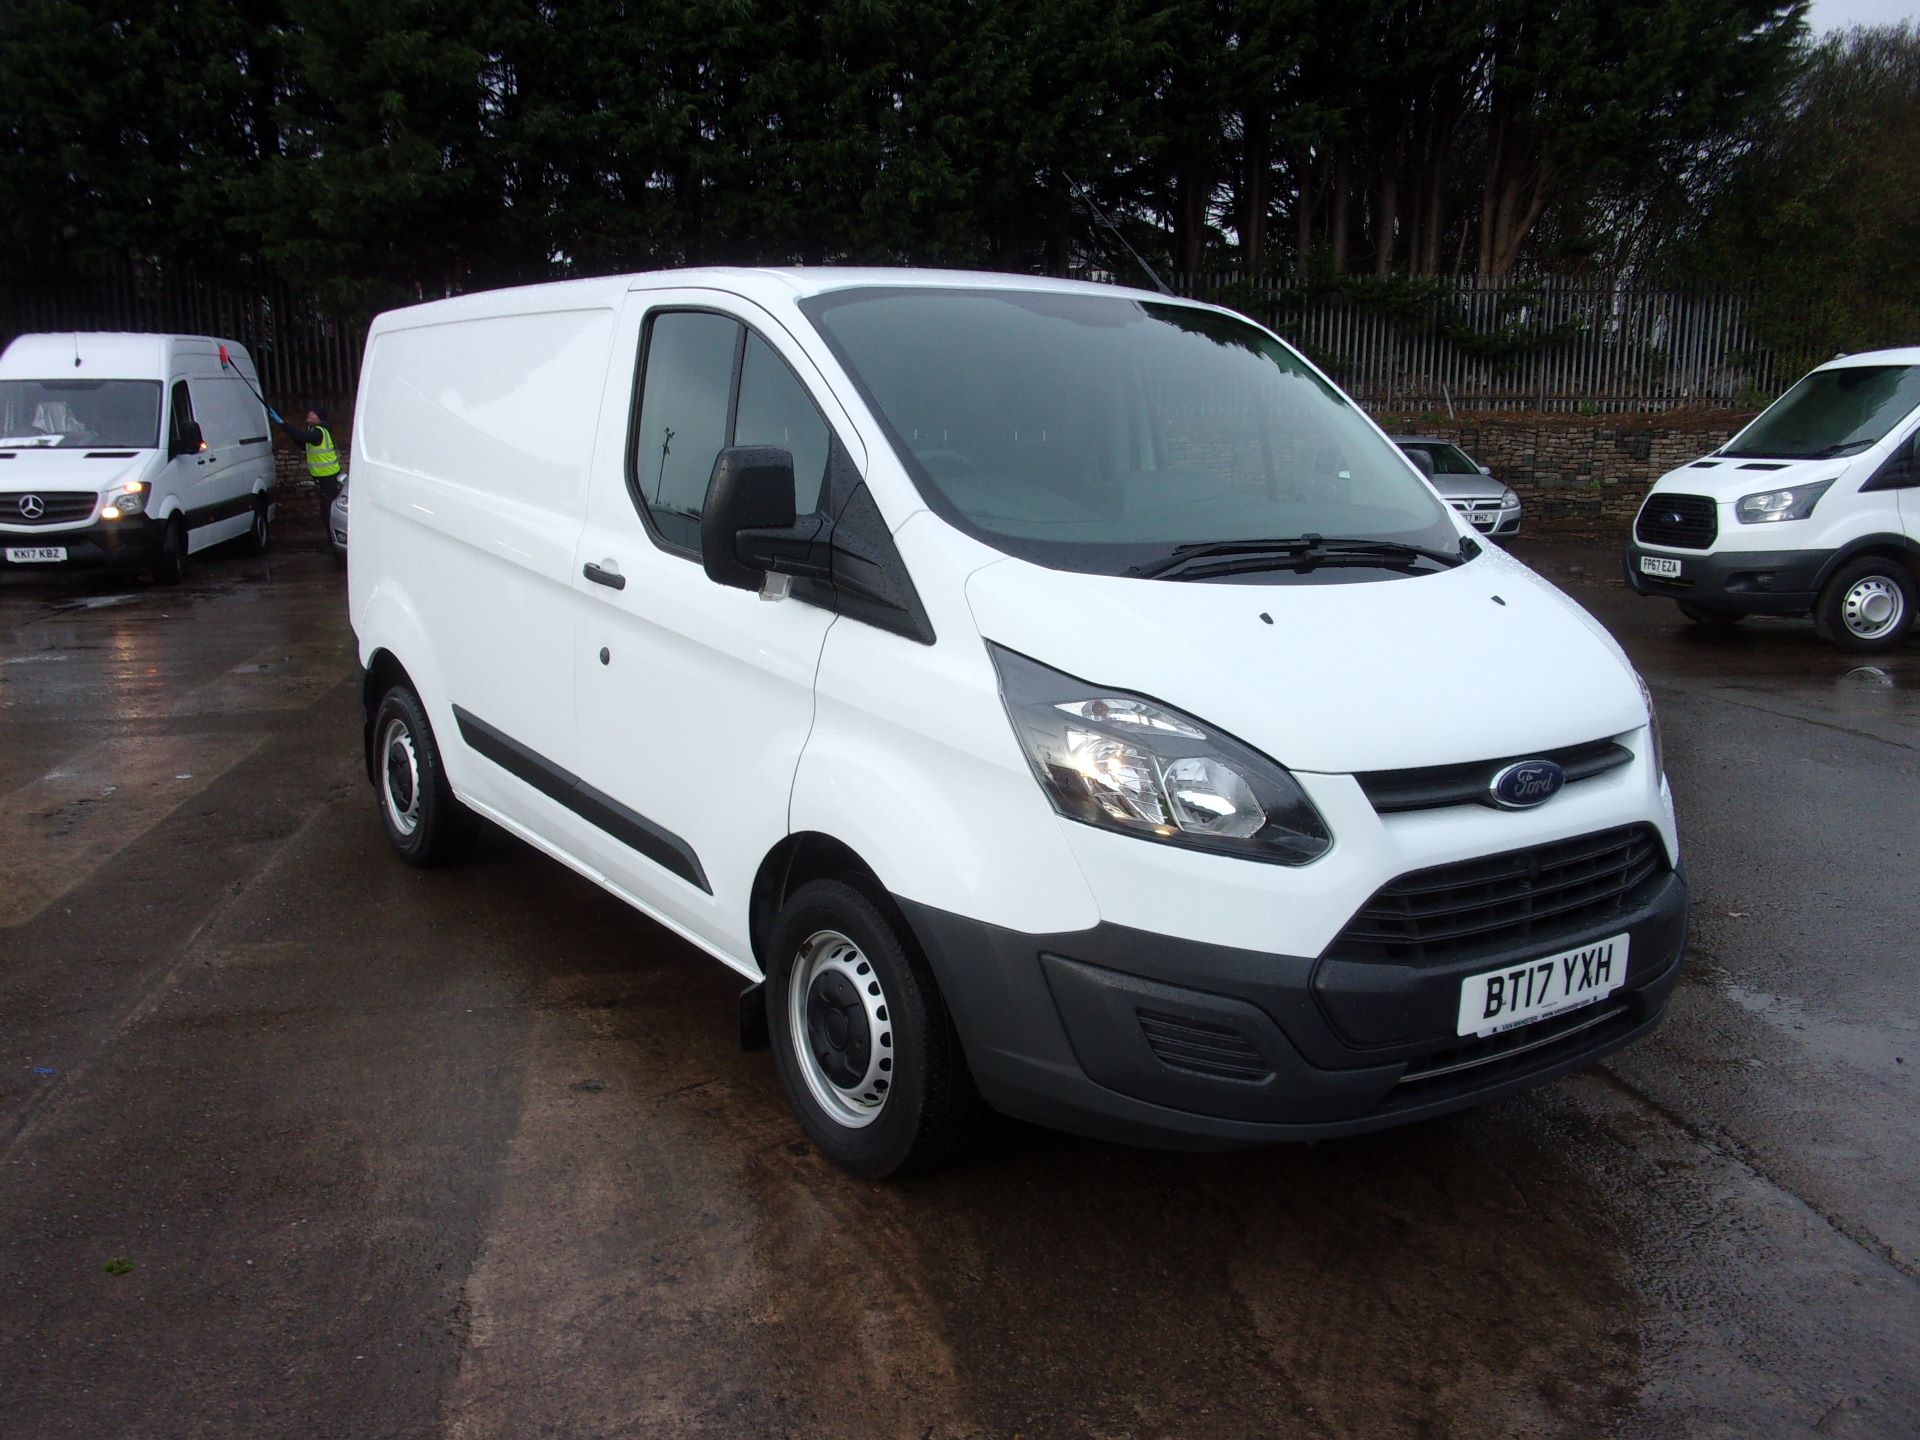 2017 Ford Transit Custom 290 L1 DIESEL FWD 2.0 TDCI 105PS LOW ROOF VAN EURO 6 *LIMITED TO 70MPH* (BT17YXH)